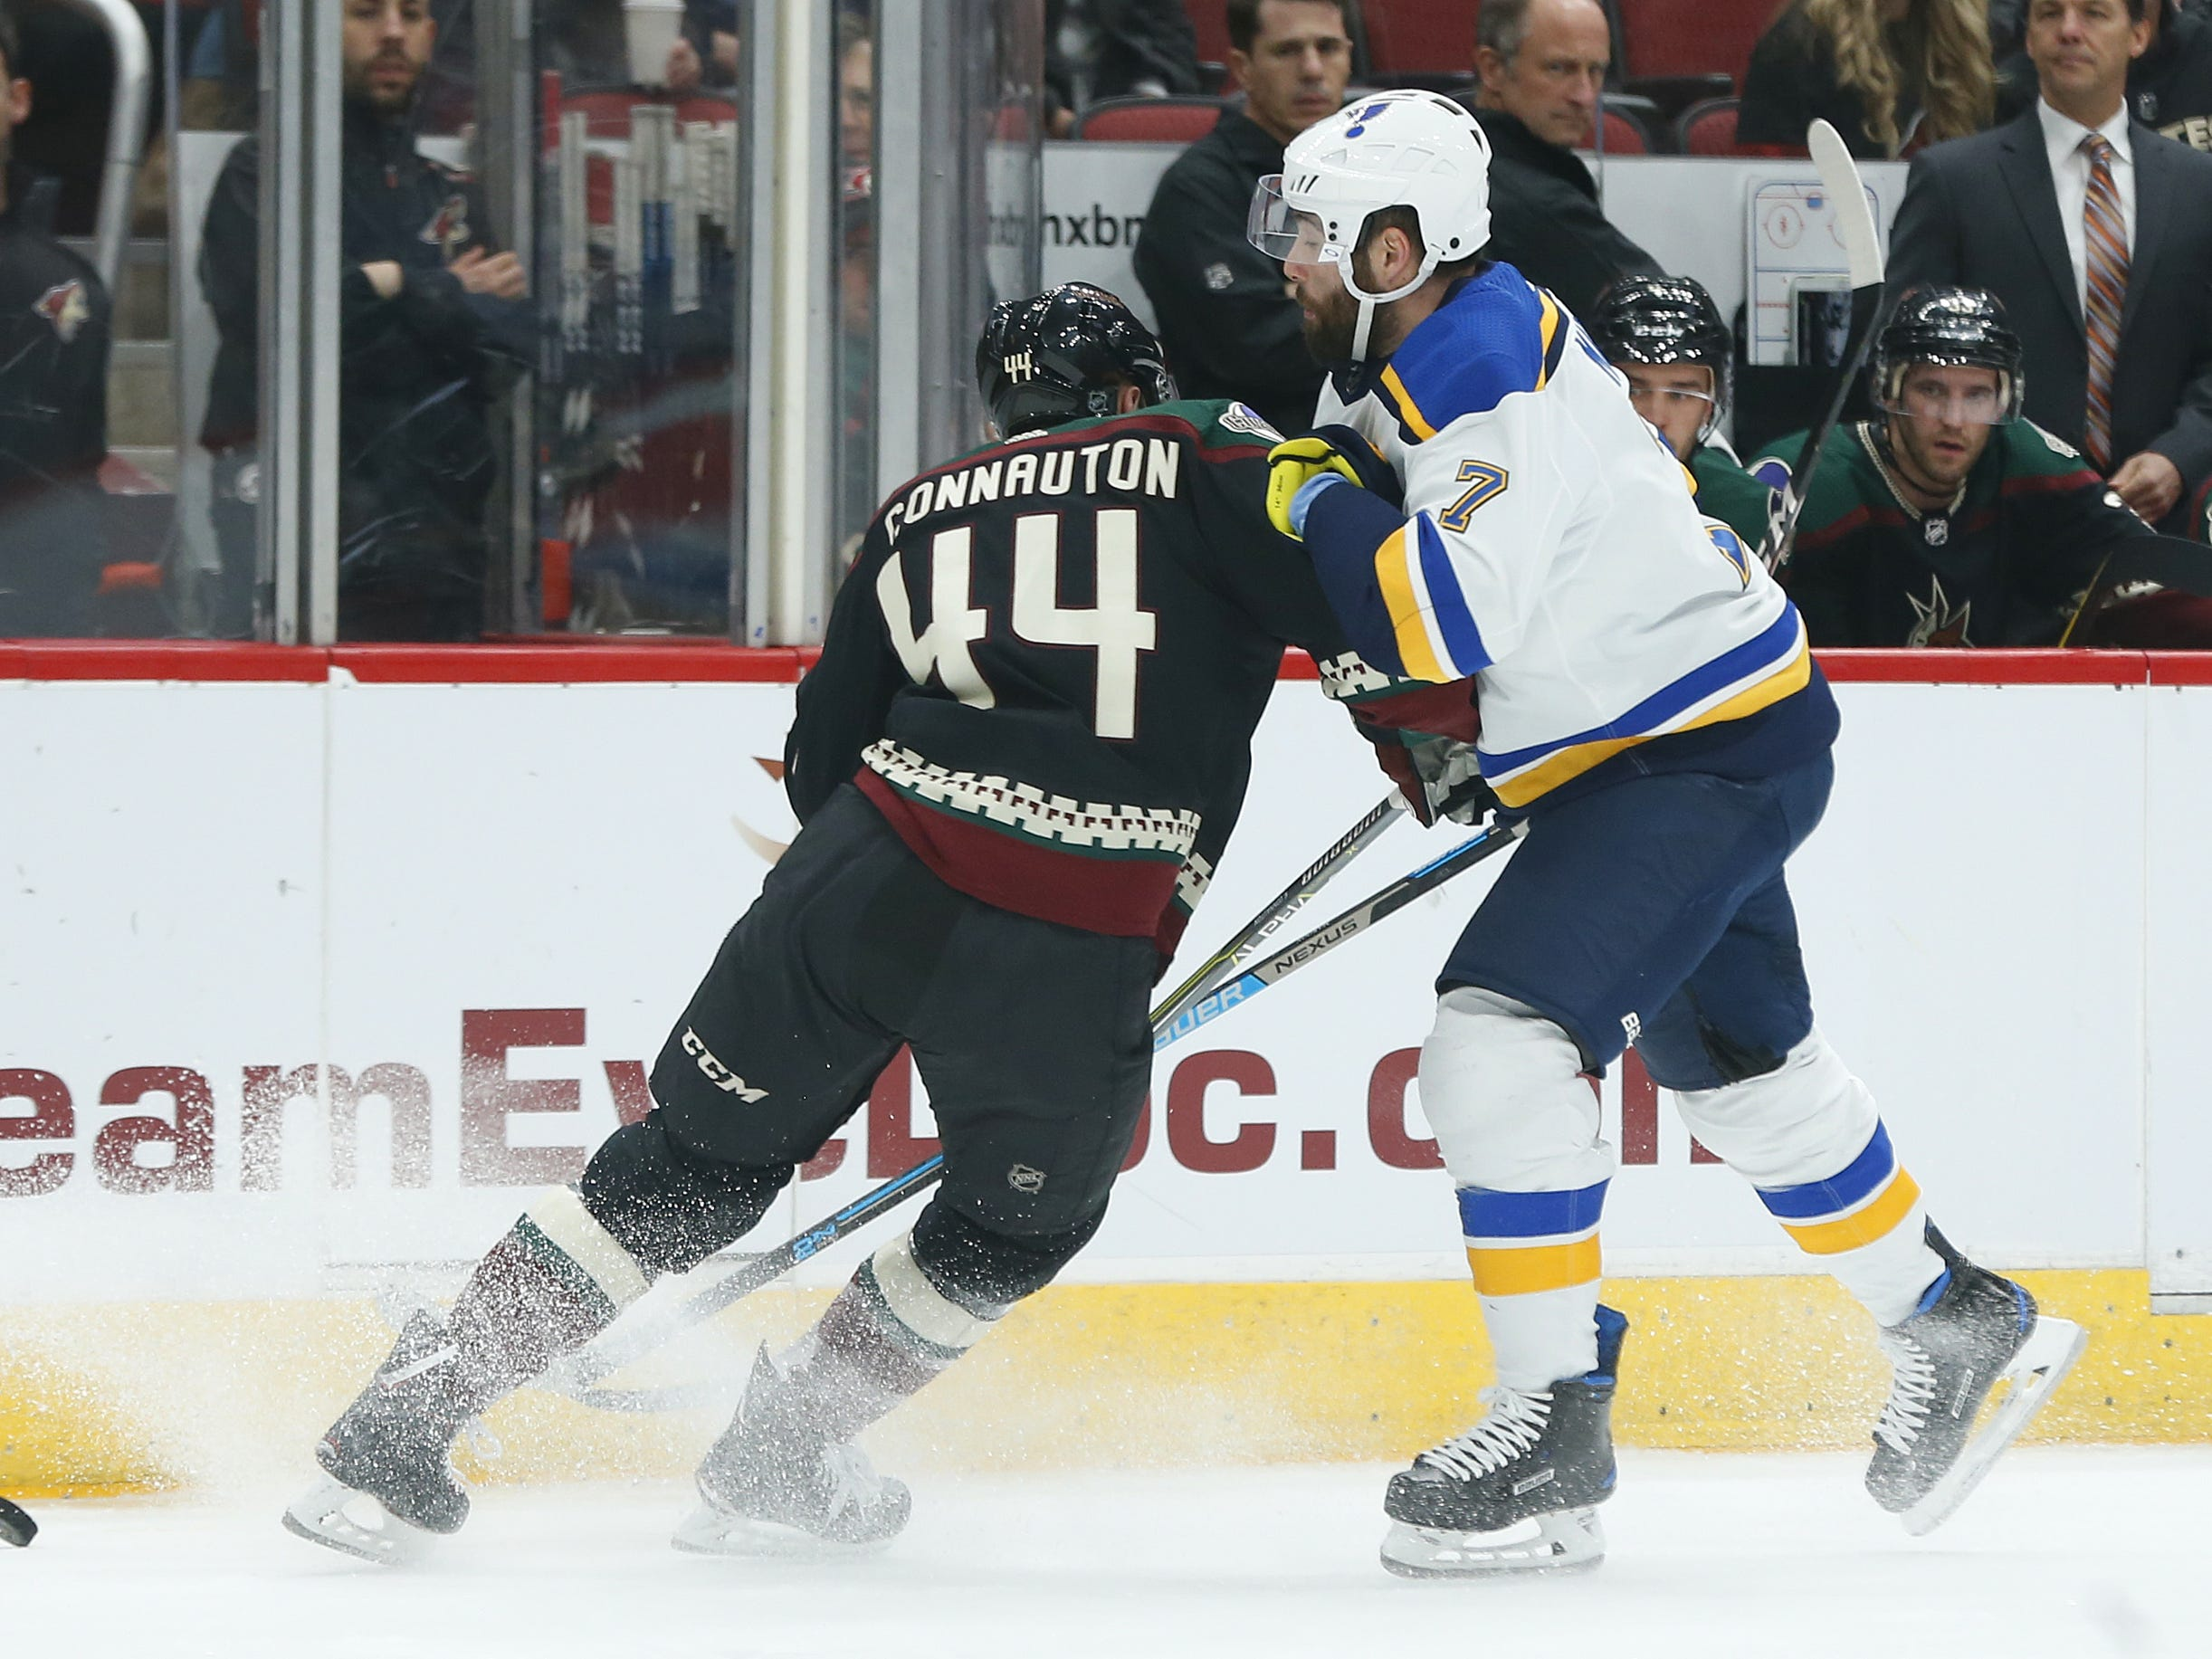 Coyotes' Kevin Connauton (44) hits Blues' Pat Maroon (7) during the first period at Gila River Arena in Glendale, Ariz. on December 1, 2018.